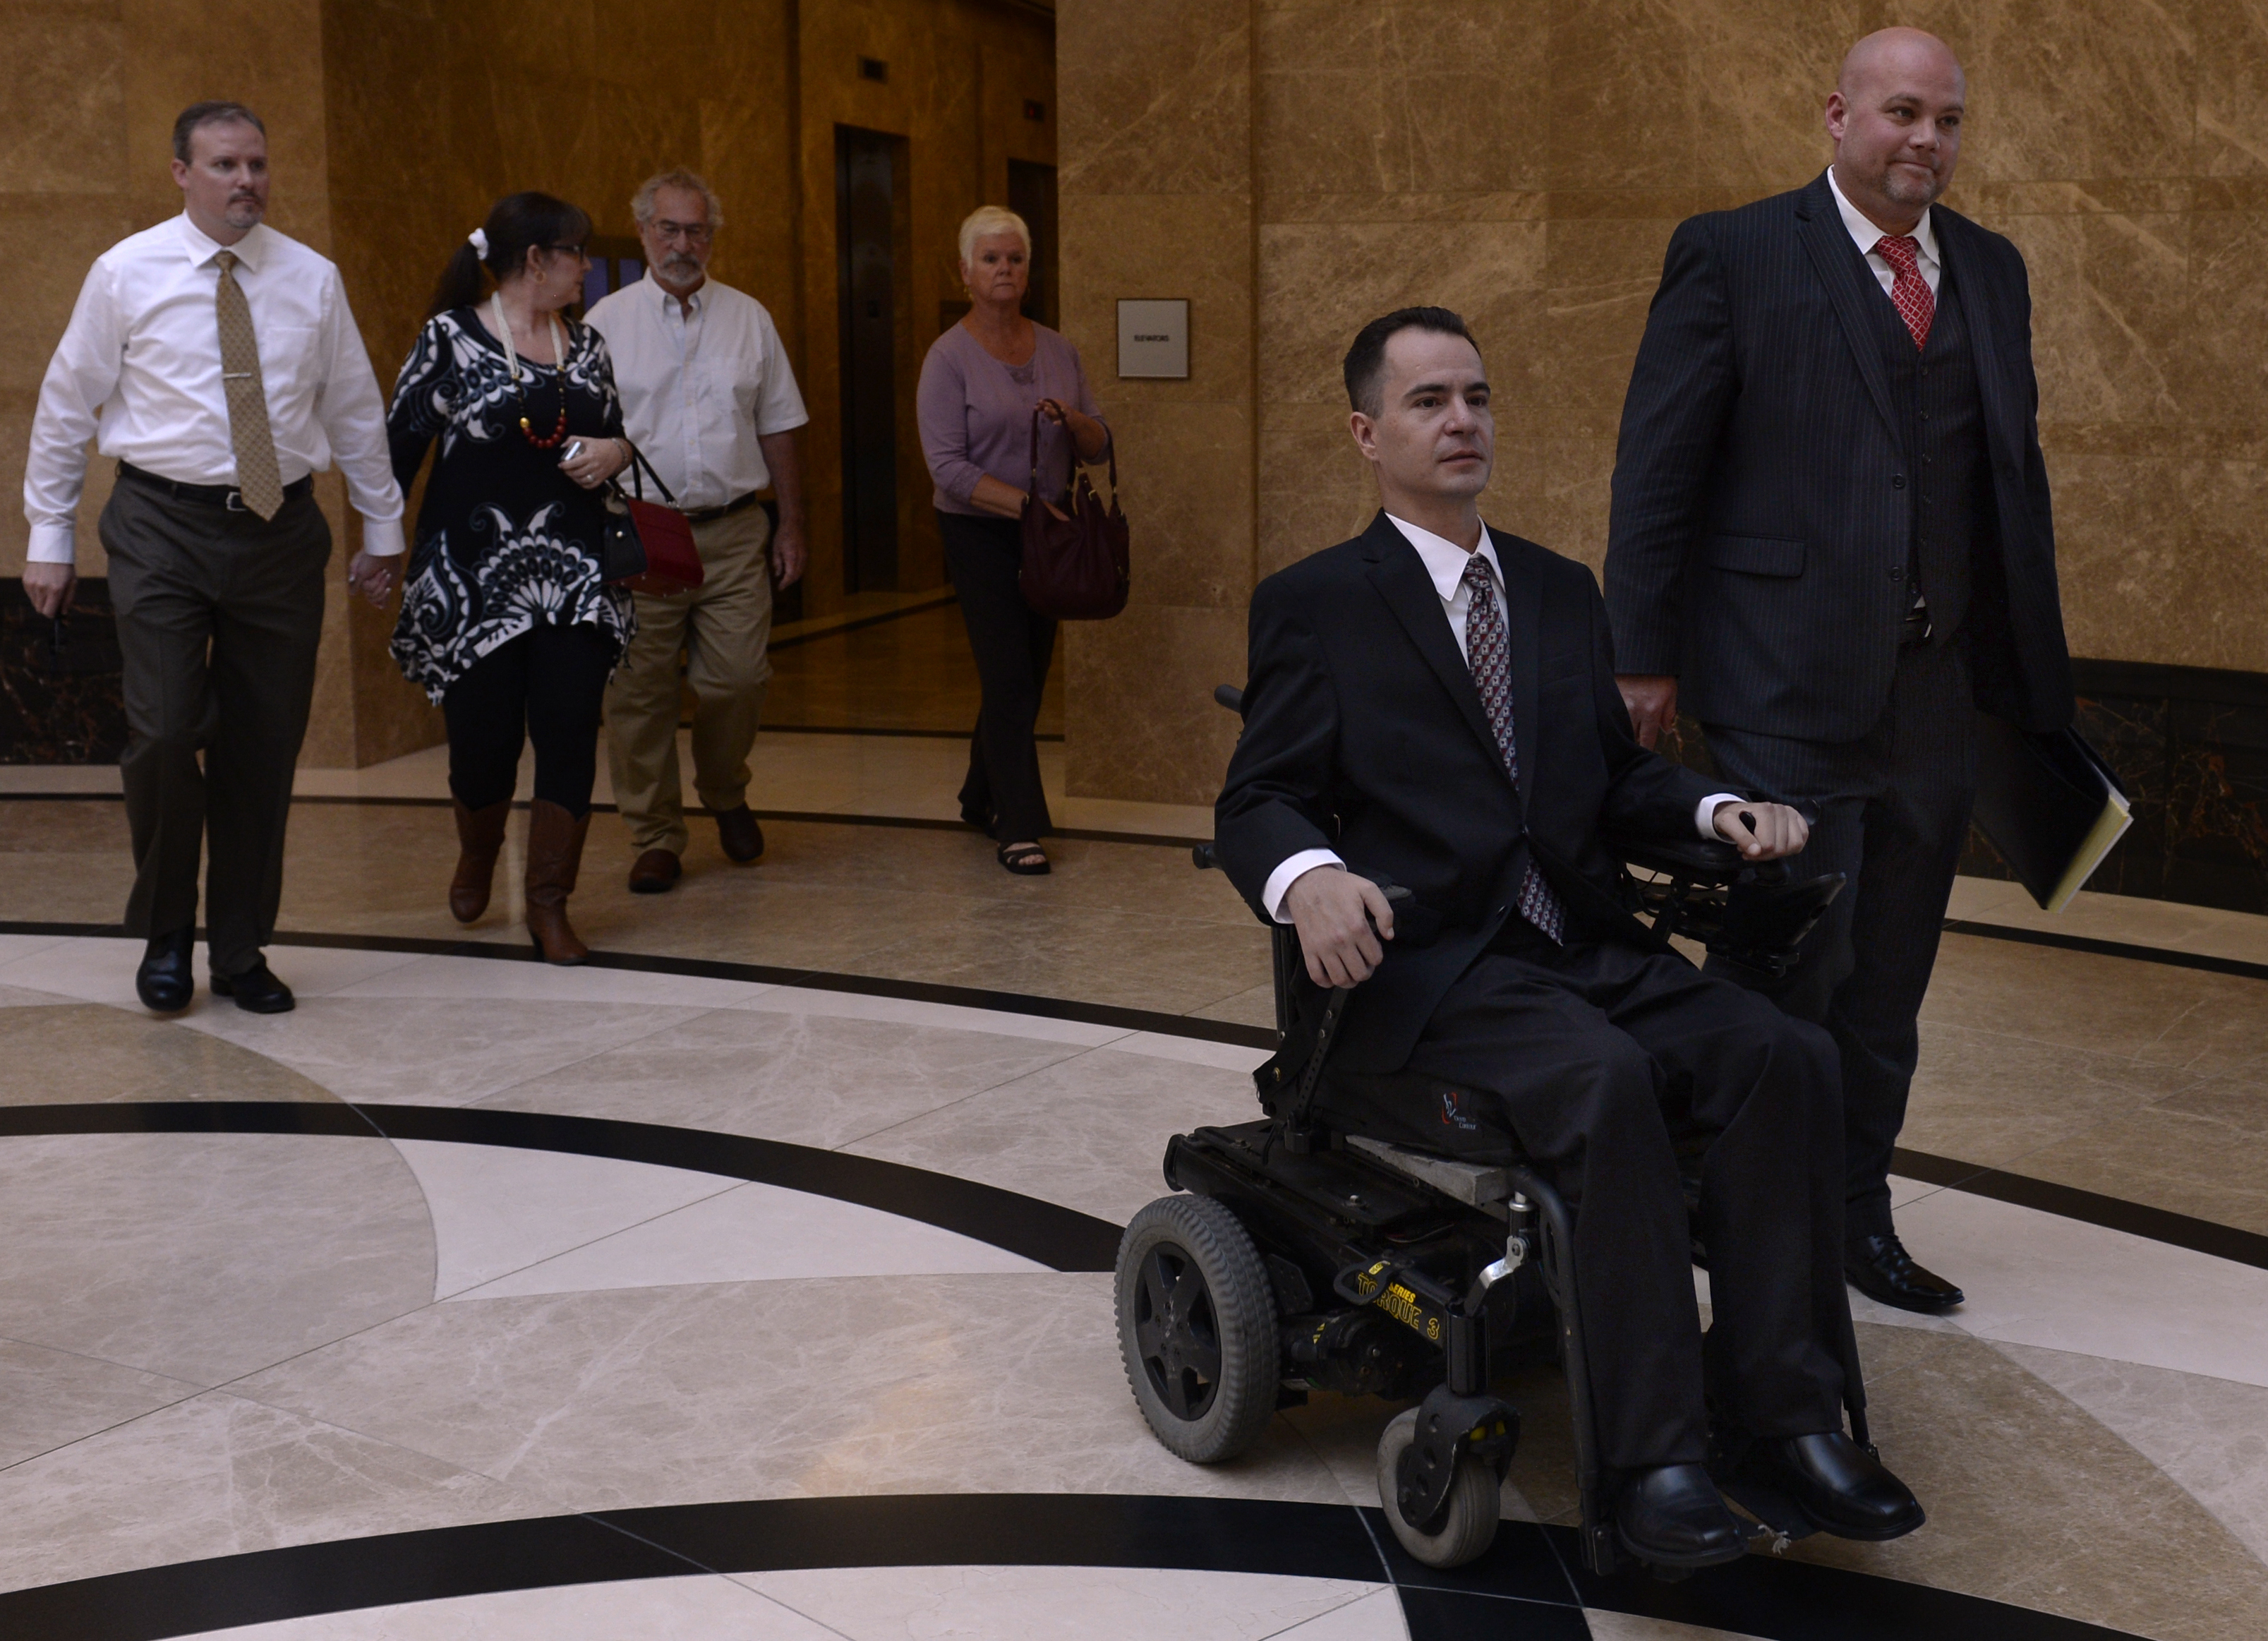 The Colorado Supreme Court listens to arguments in the the case of Brandon Coats, a quadriplegic medical marijuana patient who was fired from his job at Dish Network after testing positive for marijuana. A written decision by the court will be issued at a